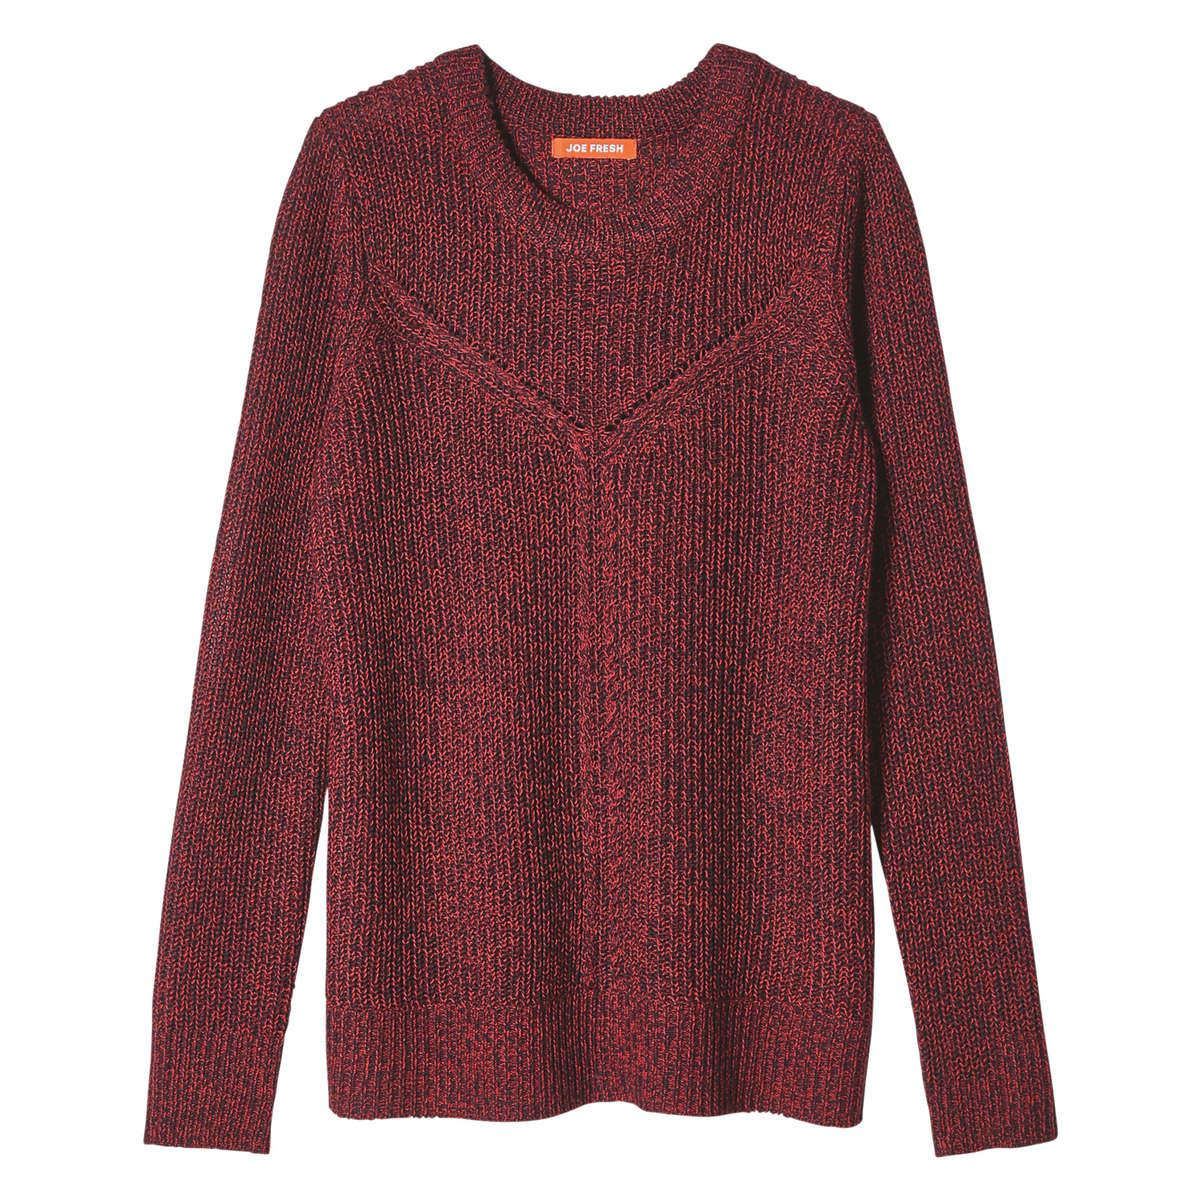 Joe fresh Marled Stitch Sweater in Red | Lyst